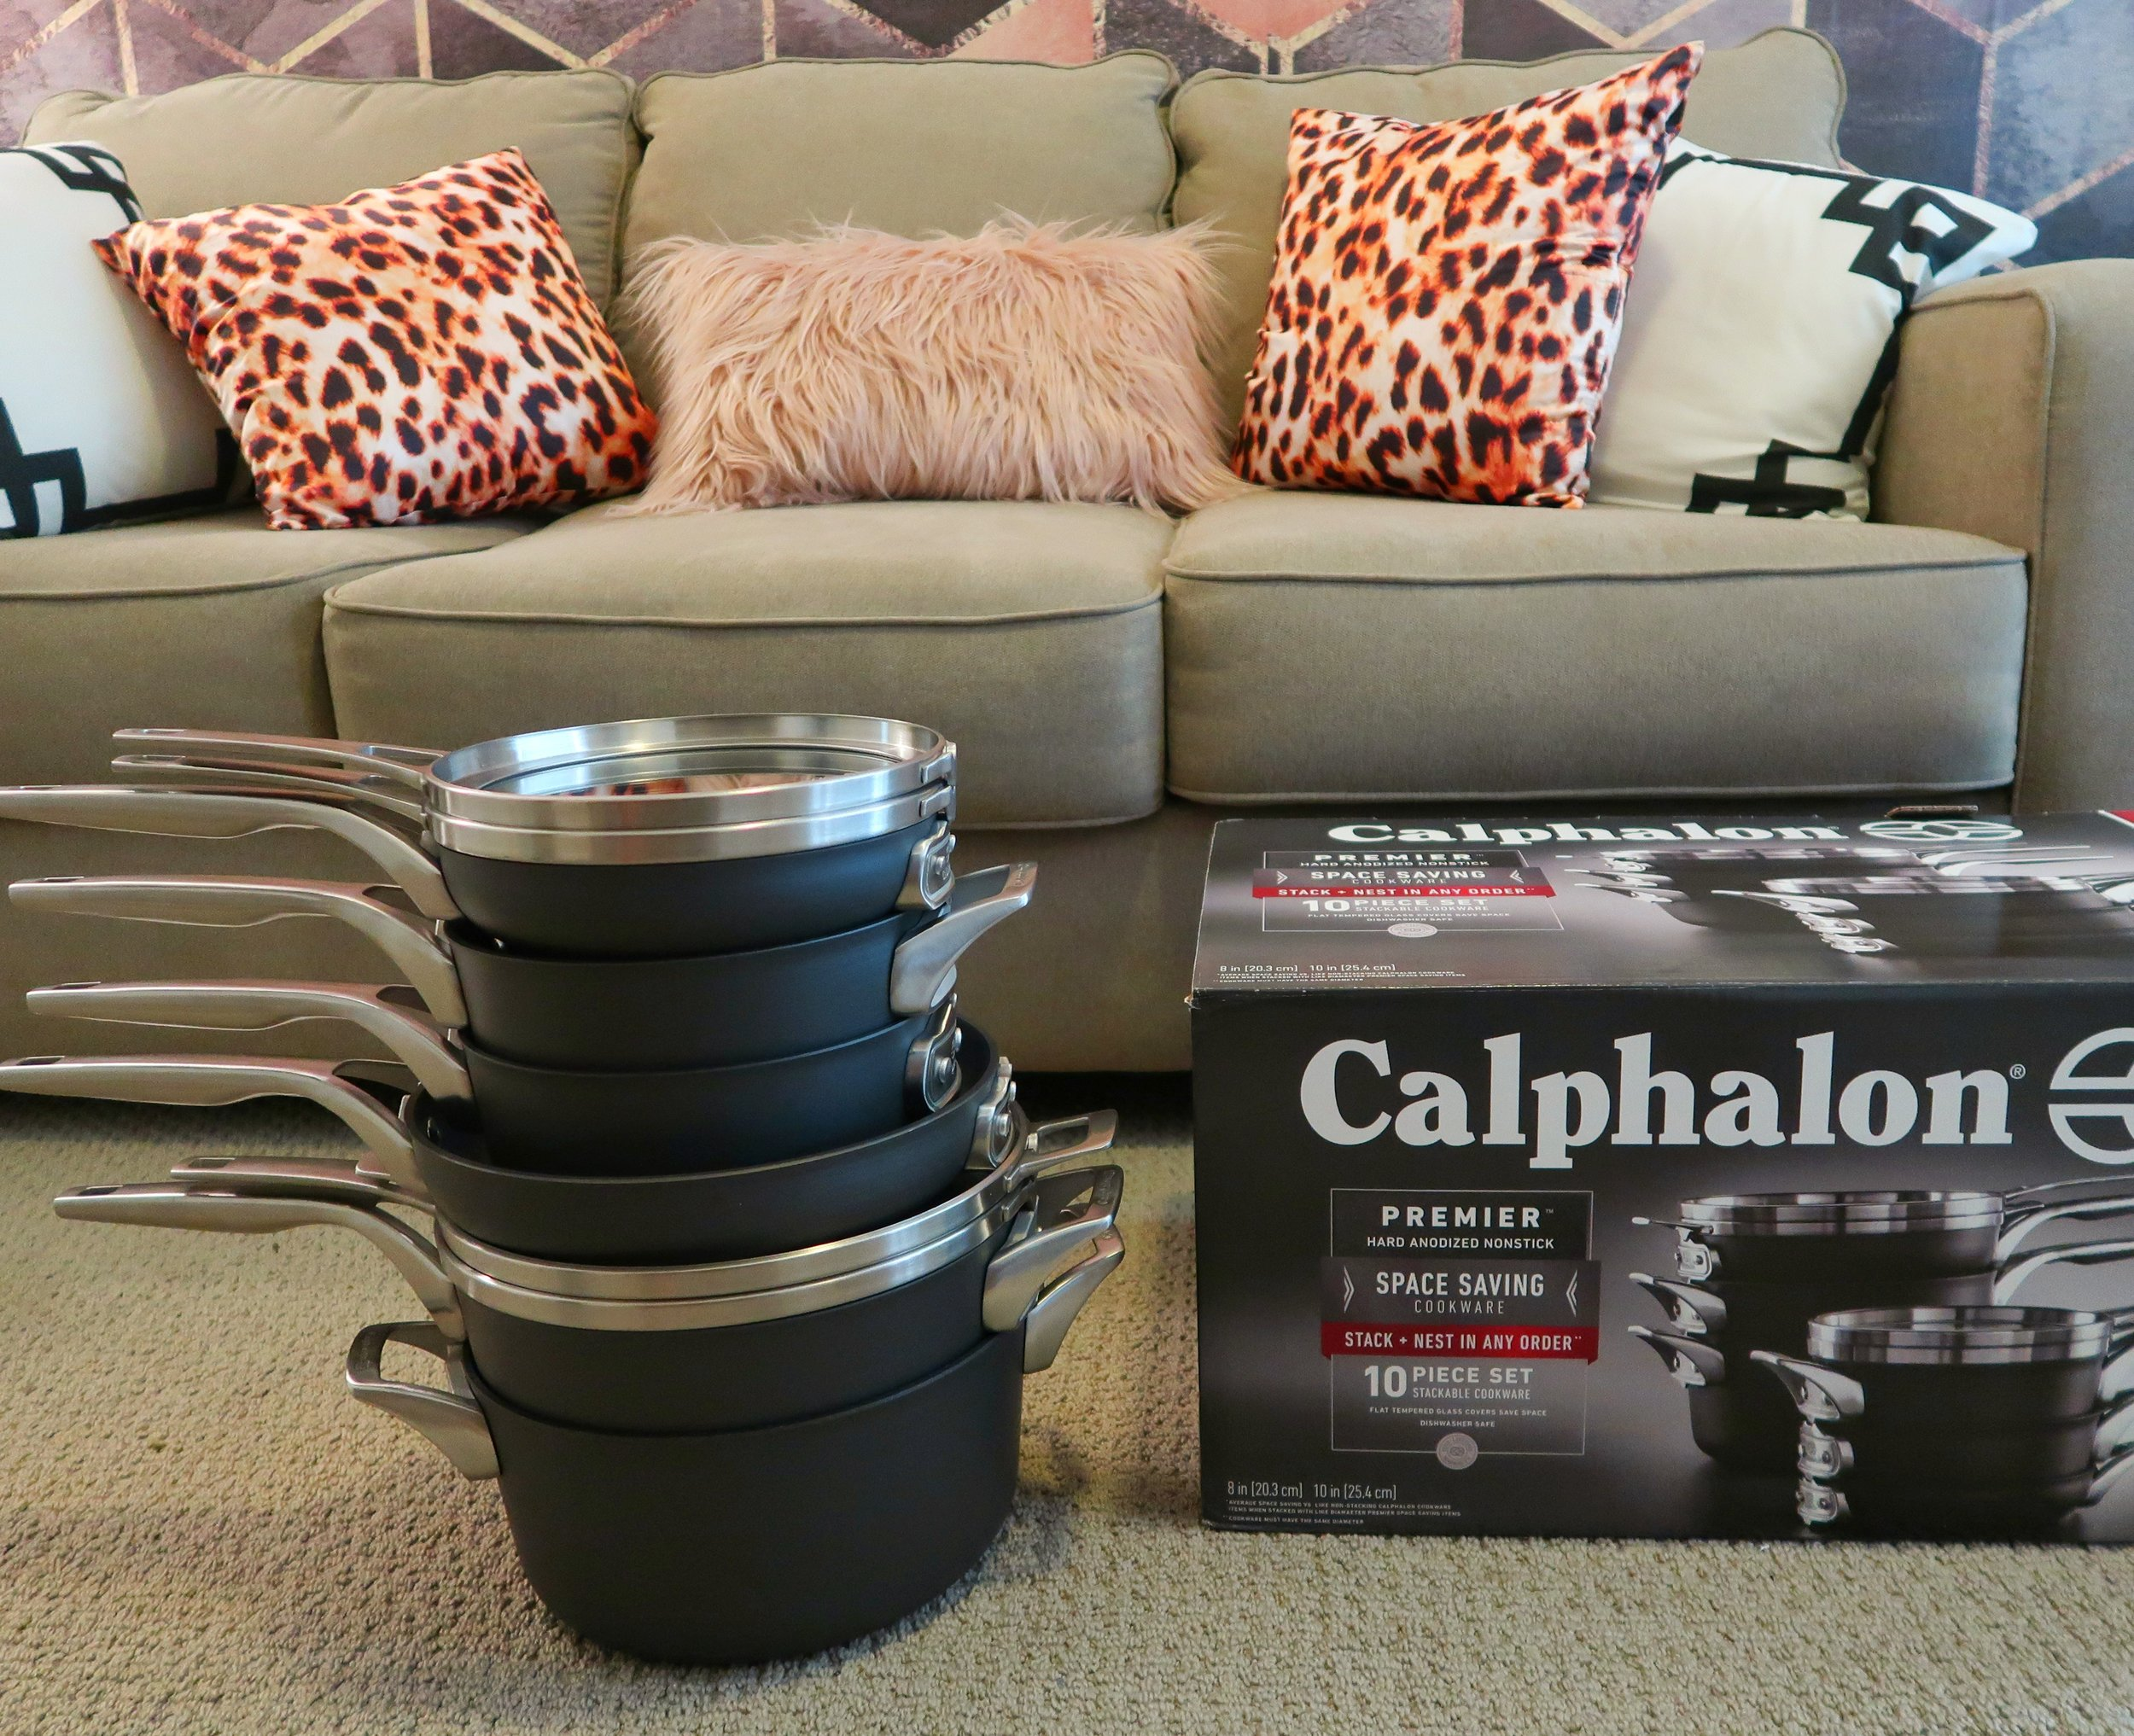 Space Saving Stackable Calphalon Pots